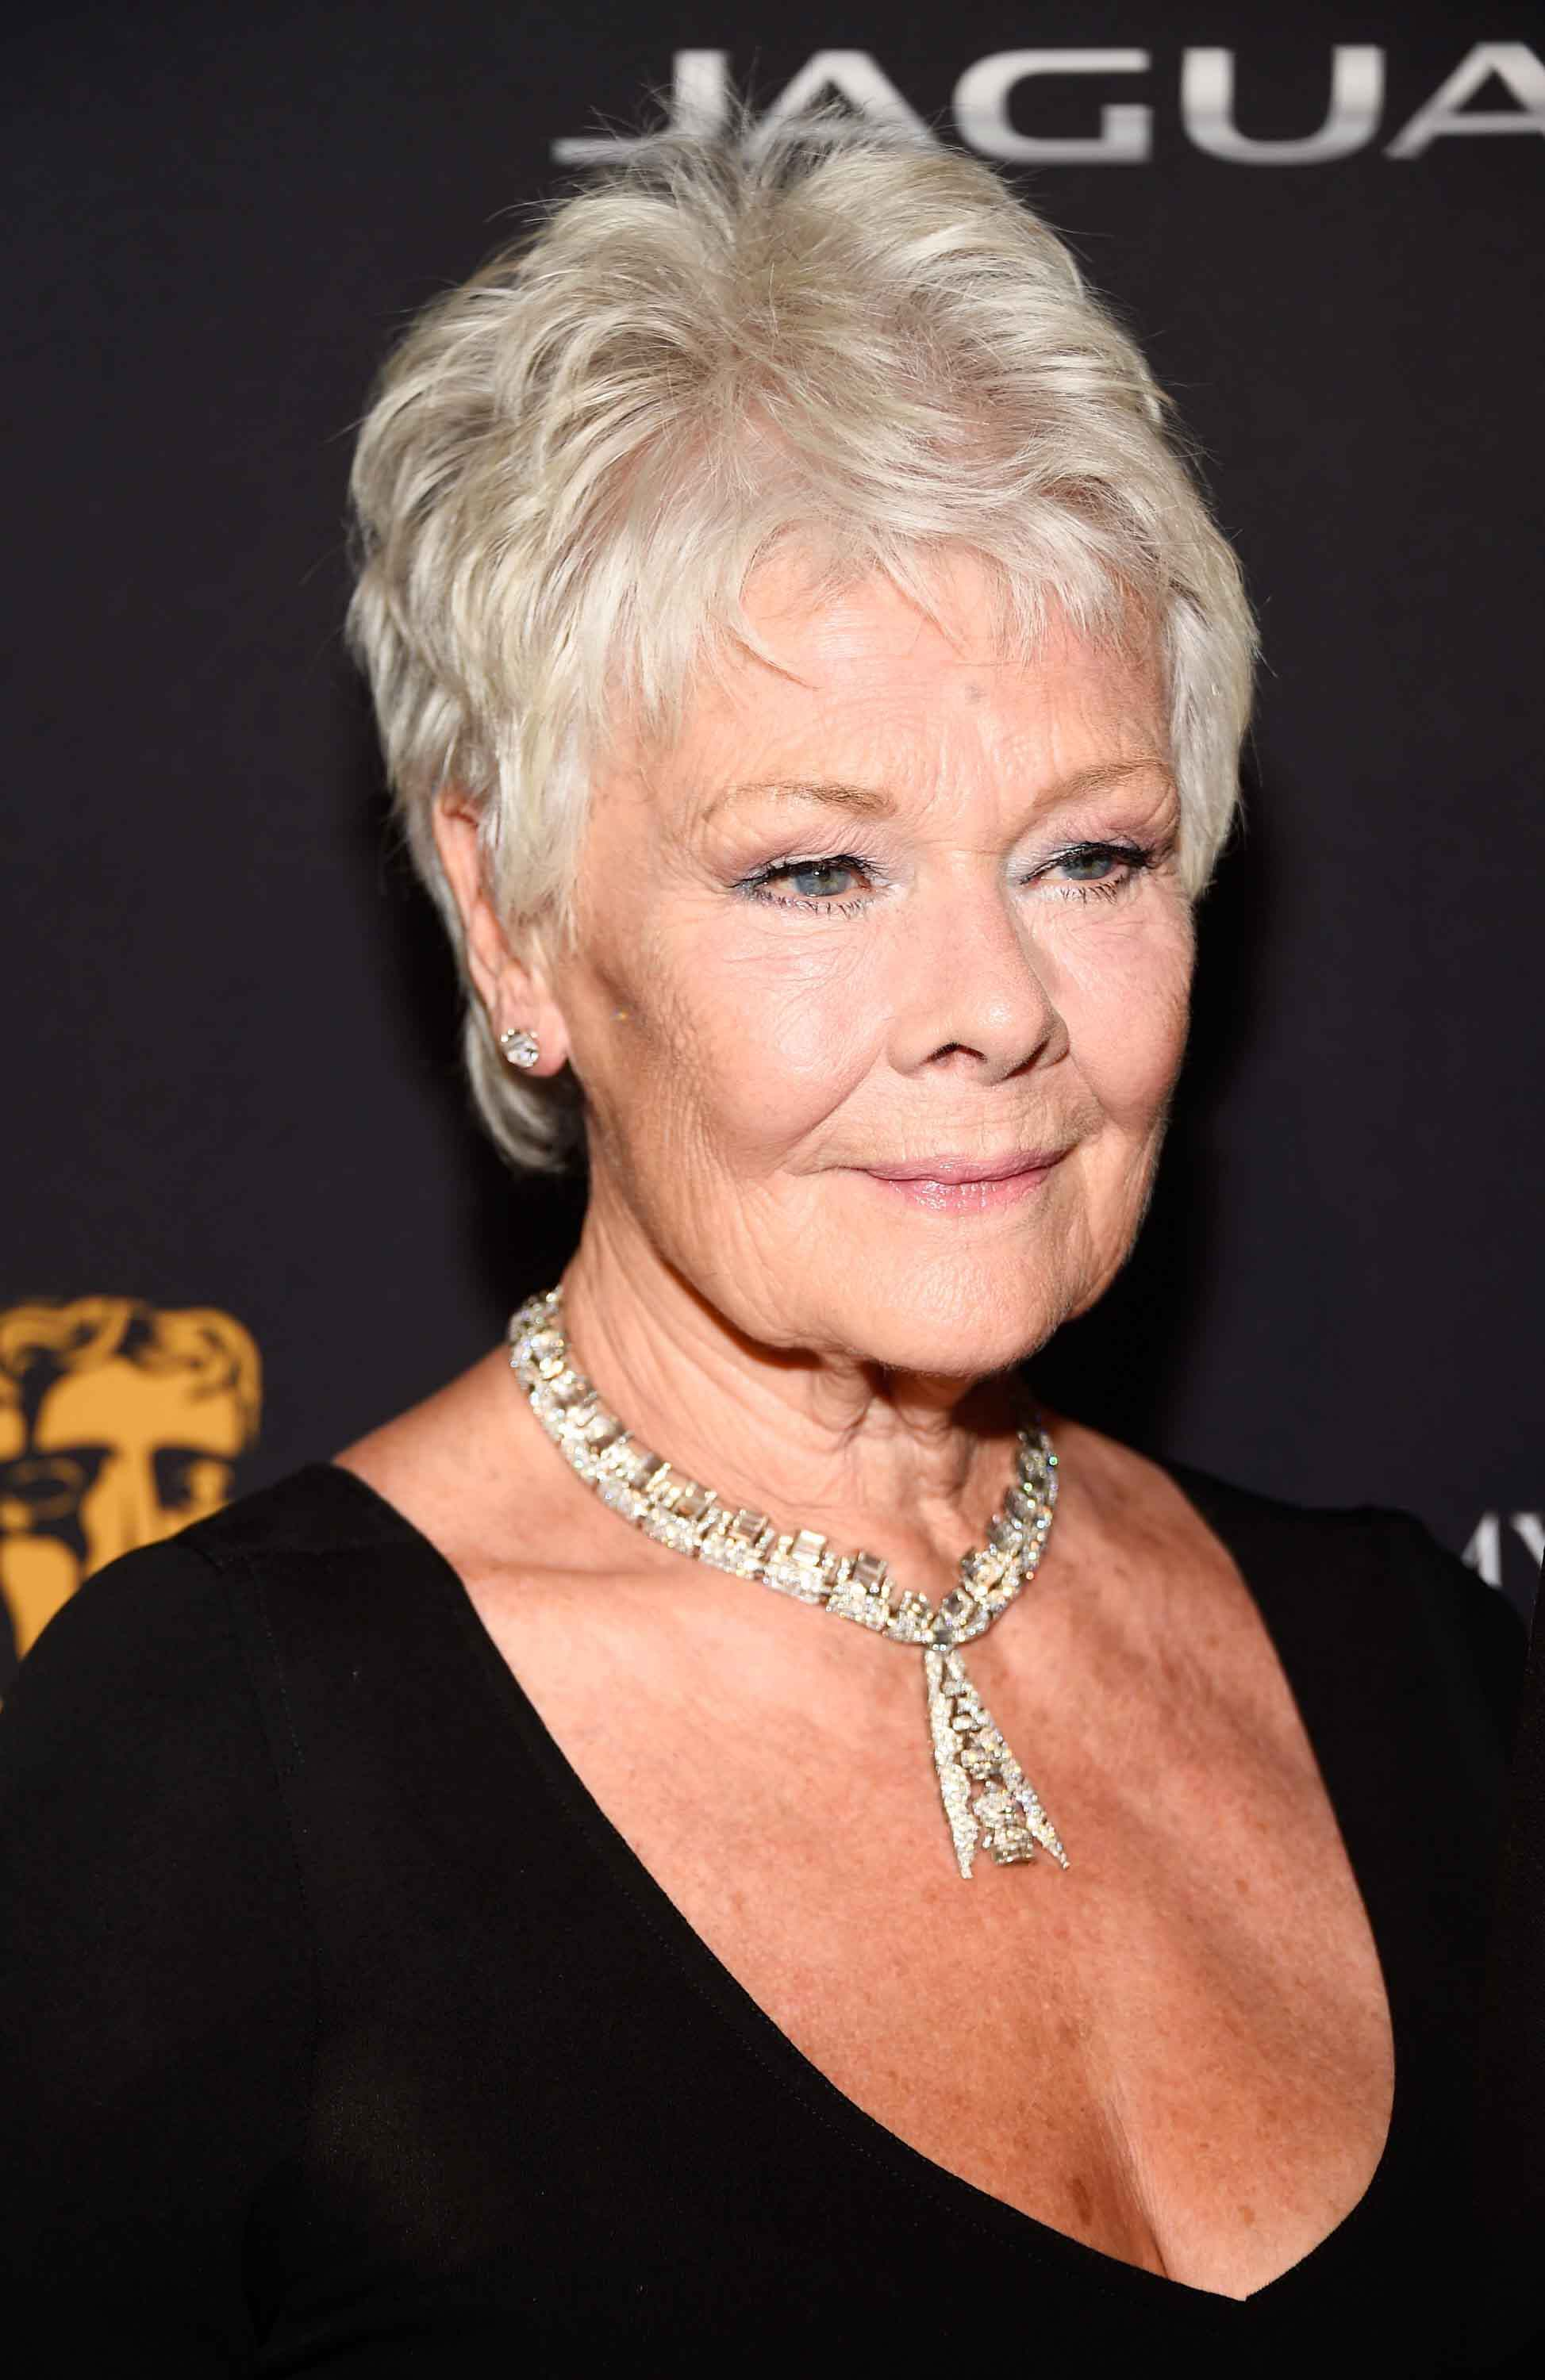 Pixie hairstyles Judi Dench. Credit Getty Images